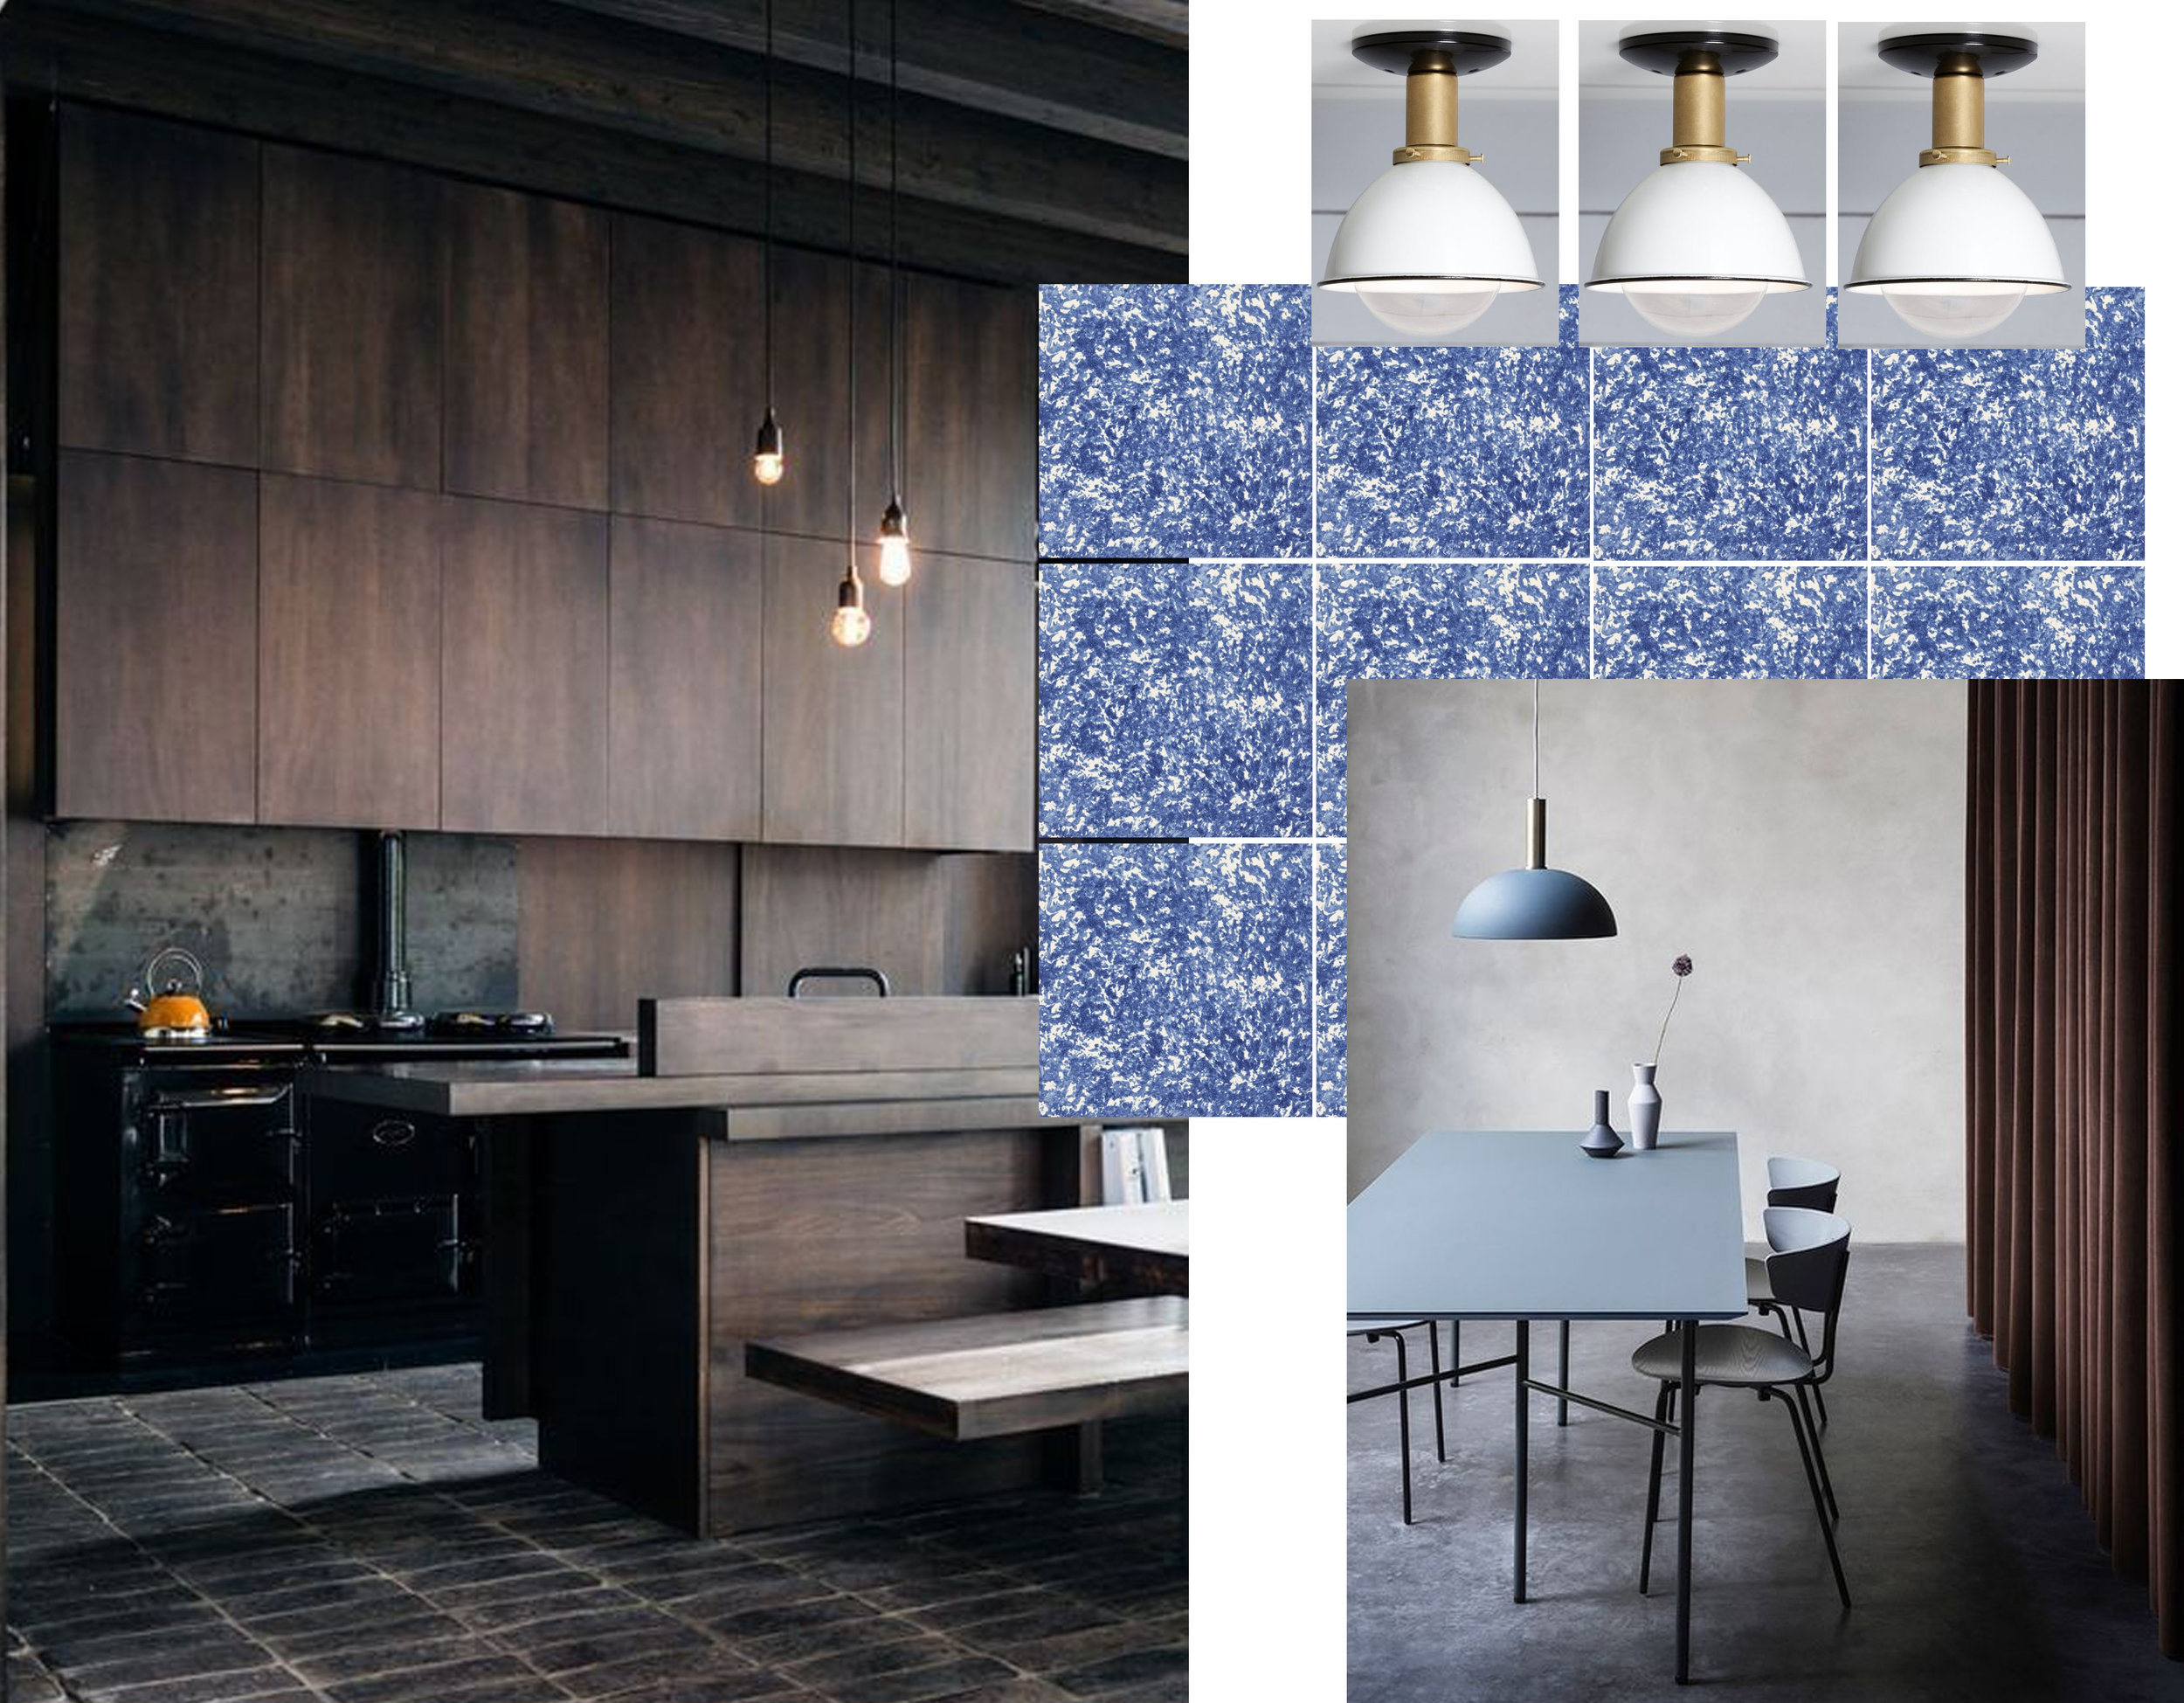 kitchen via  Residence Style  - Azulejo tiles  Viuva Lamego  - ceiling mount lamp  Industrial Light Electric  - interior image via  Collage Dersign